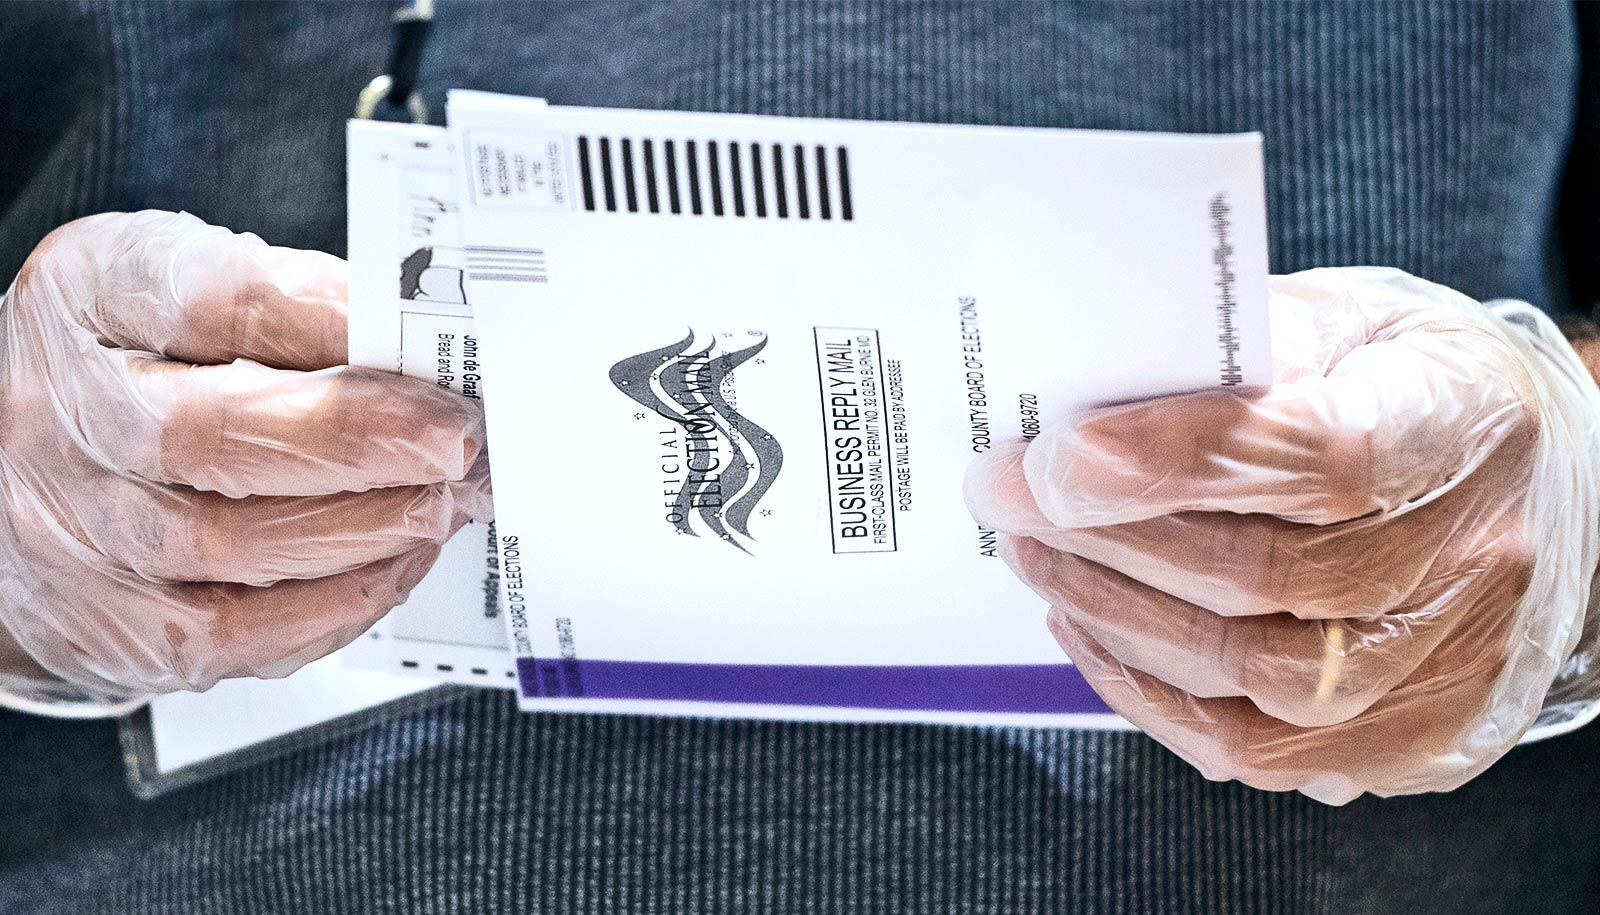 An election worker opens a mailed-in ballot